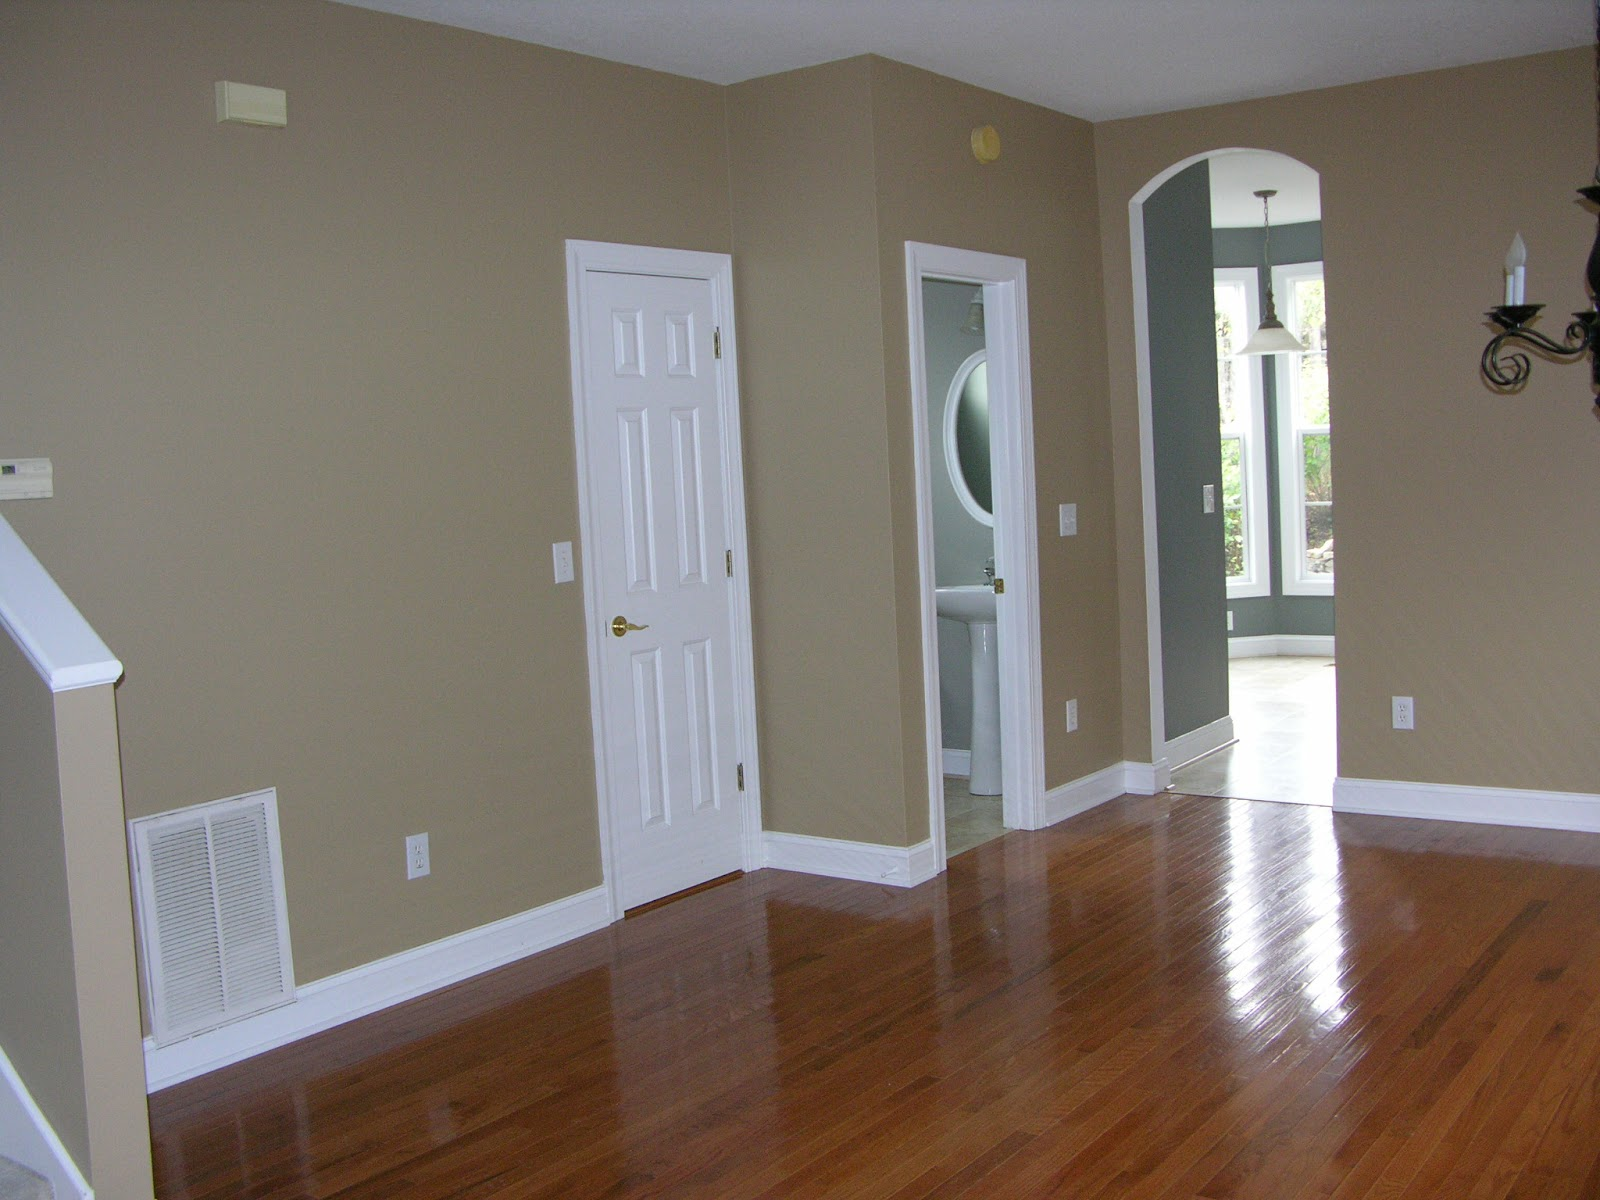 Door Paint Colors sandy at sterling property services: choosing paint colors for